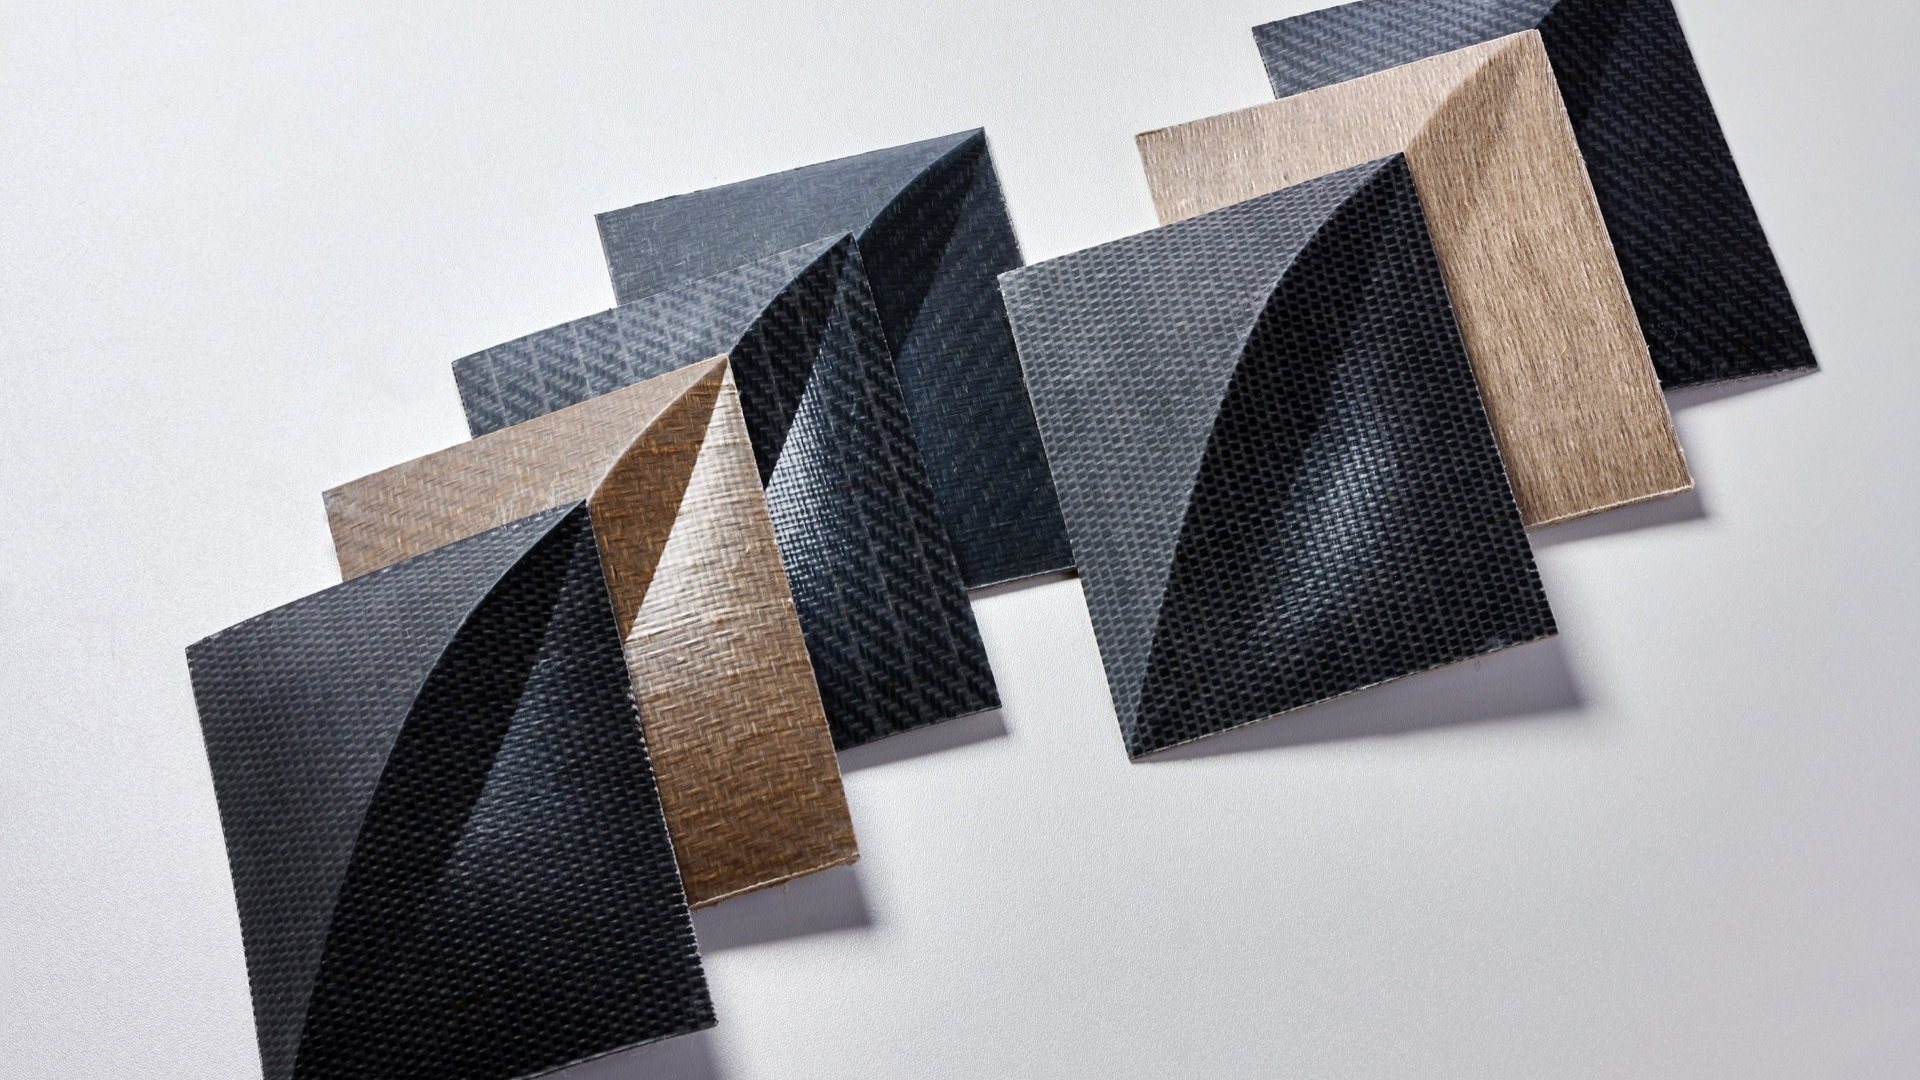 BMW sustainable materials